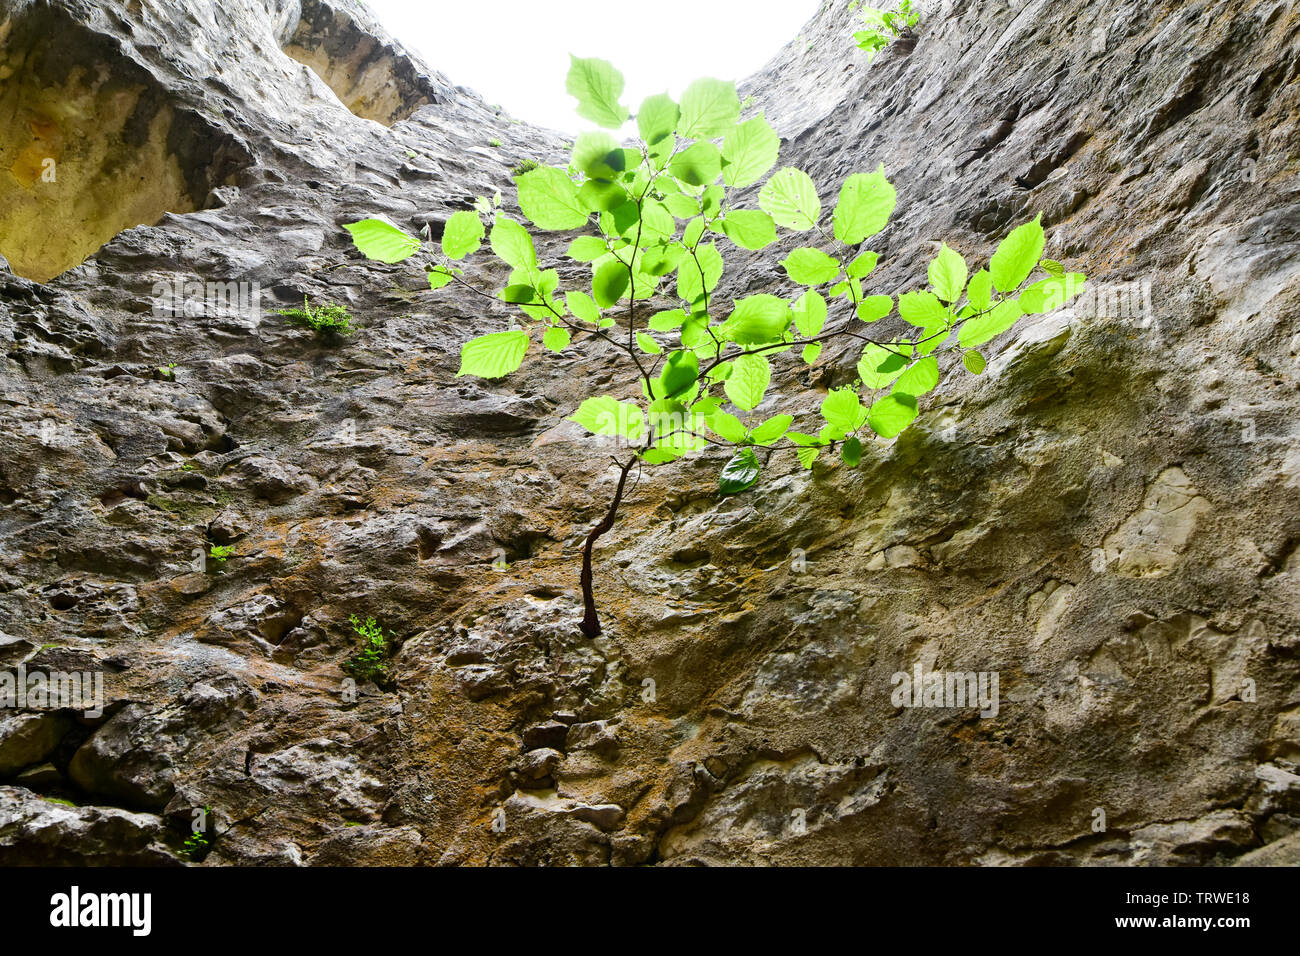 Survivor concept. Little tree growth on stone wall. - Stock Image